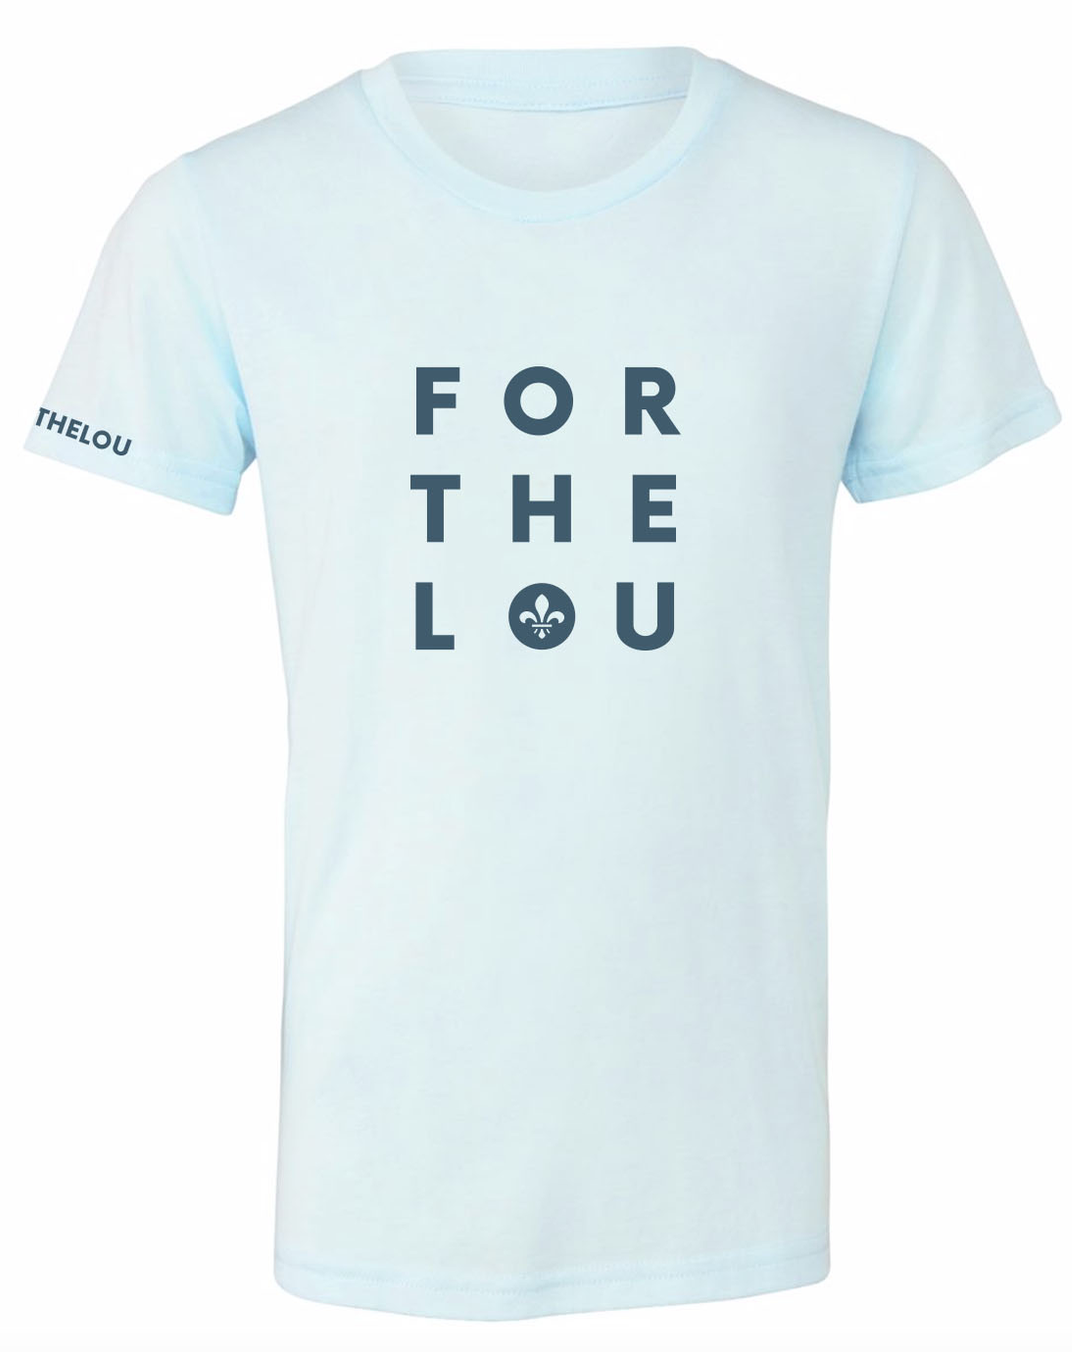 Forthelou - T-shirt Youth Xlarge